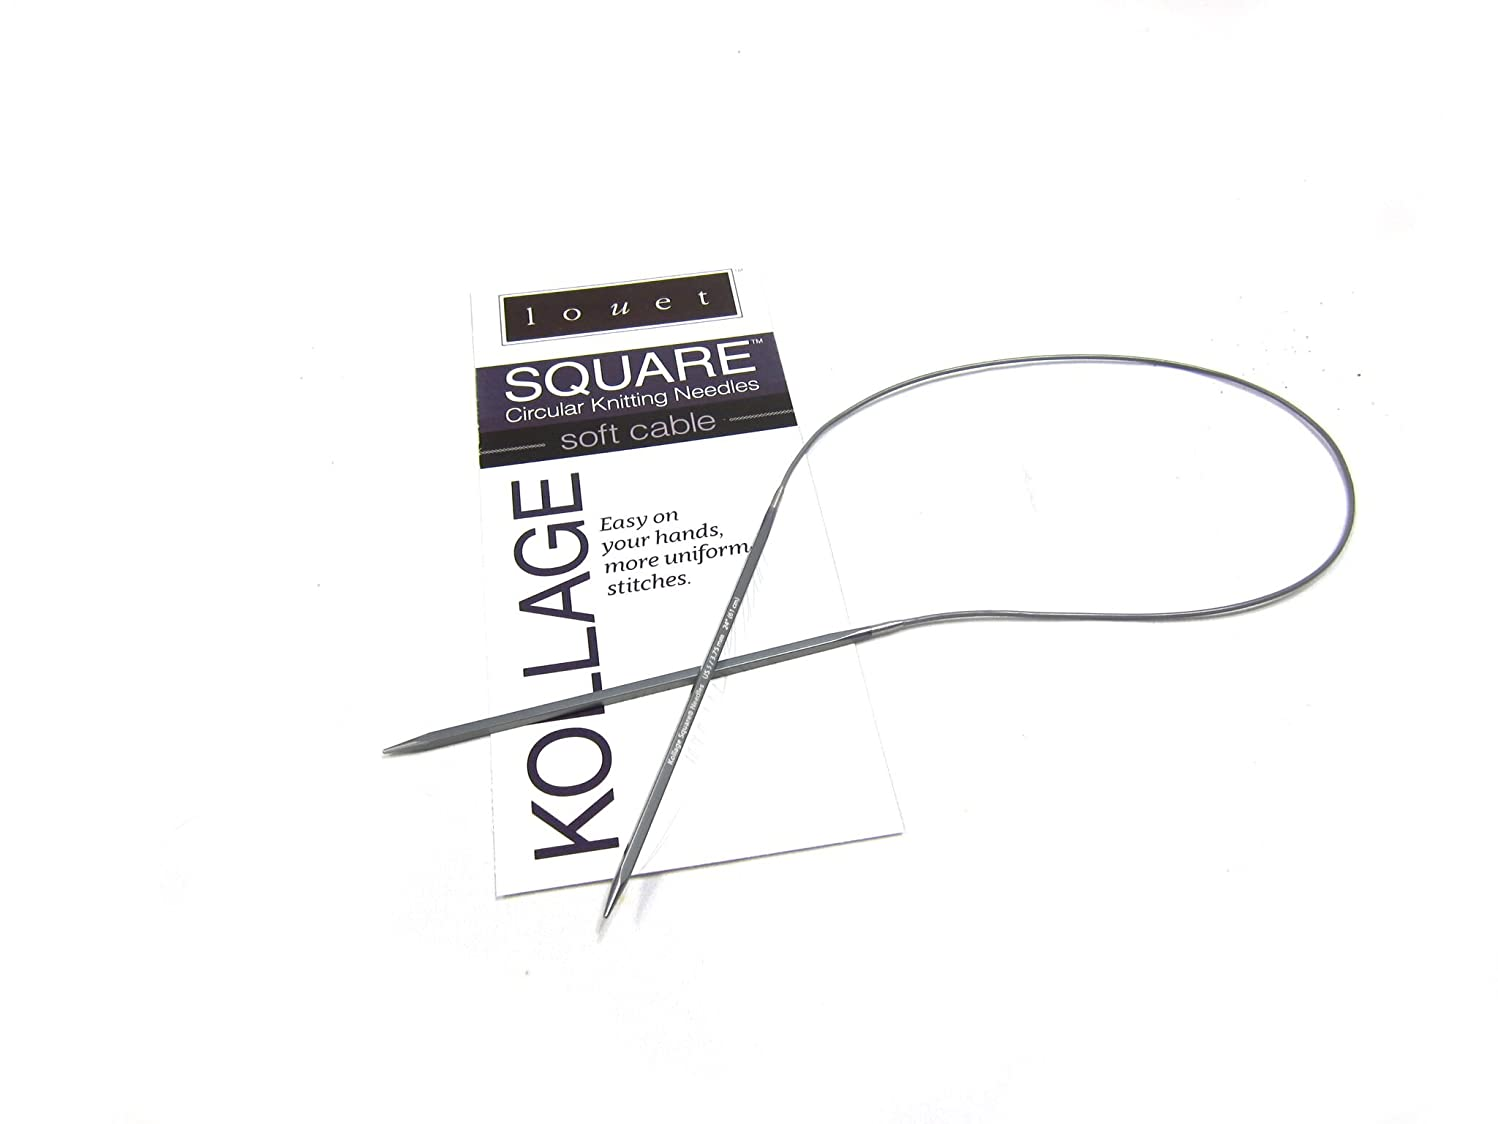 Kollage Square Circular 9-inch (23cm) Knitting Needle with Soft Cable (US 1/2.25mm)